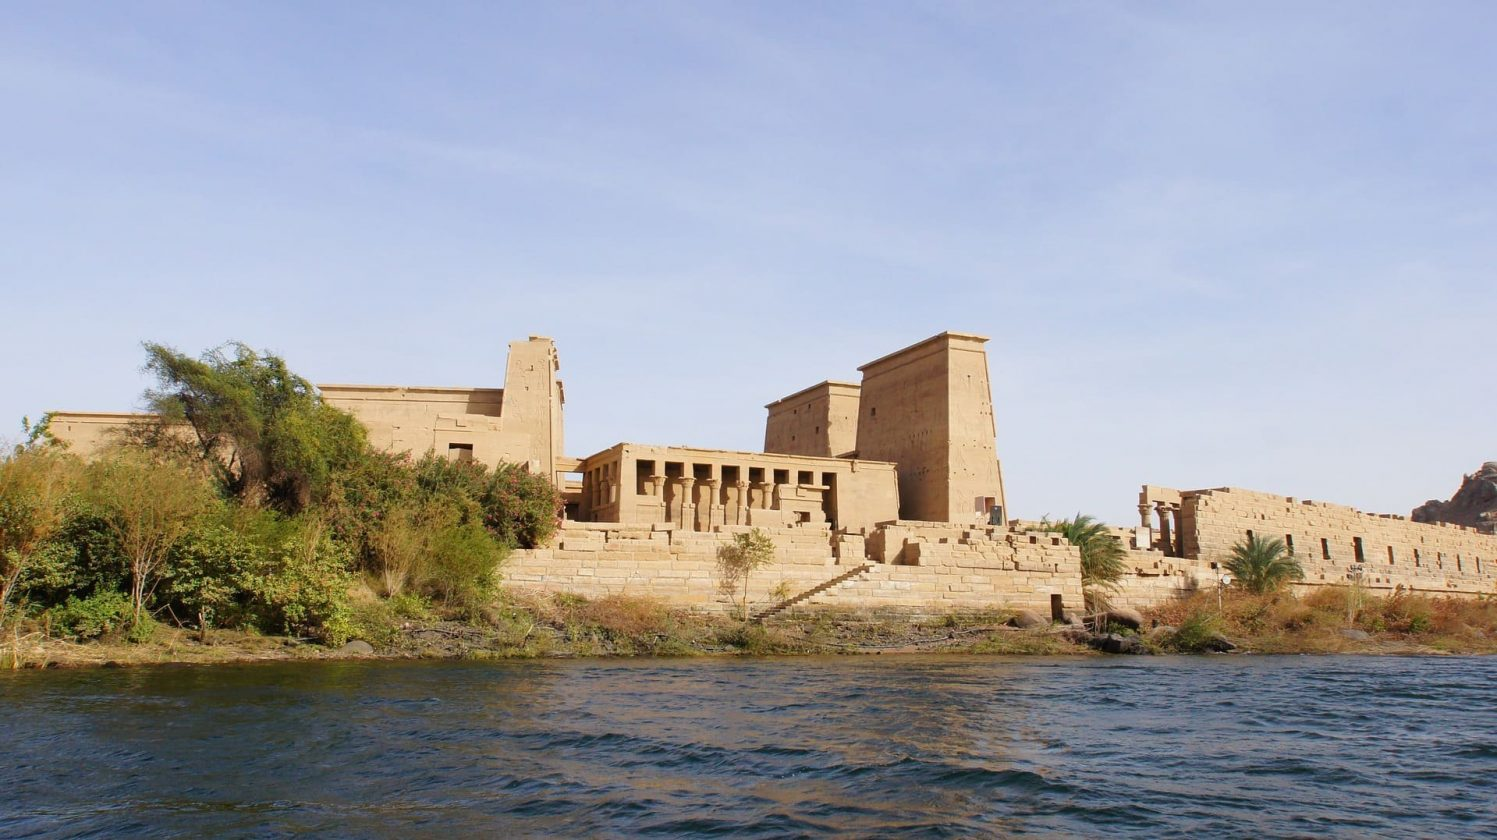 Visit Philae Island & the Top Attractions of Aswan Unfinished Obelisk and the High Dam in your Best Aswan Day Tour with private Guide & Lunch Included.Book Now & Save Best temples in egypt, egypt tours